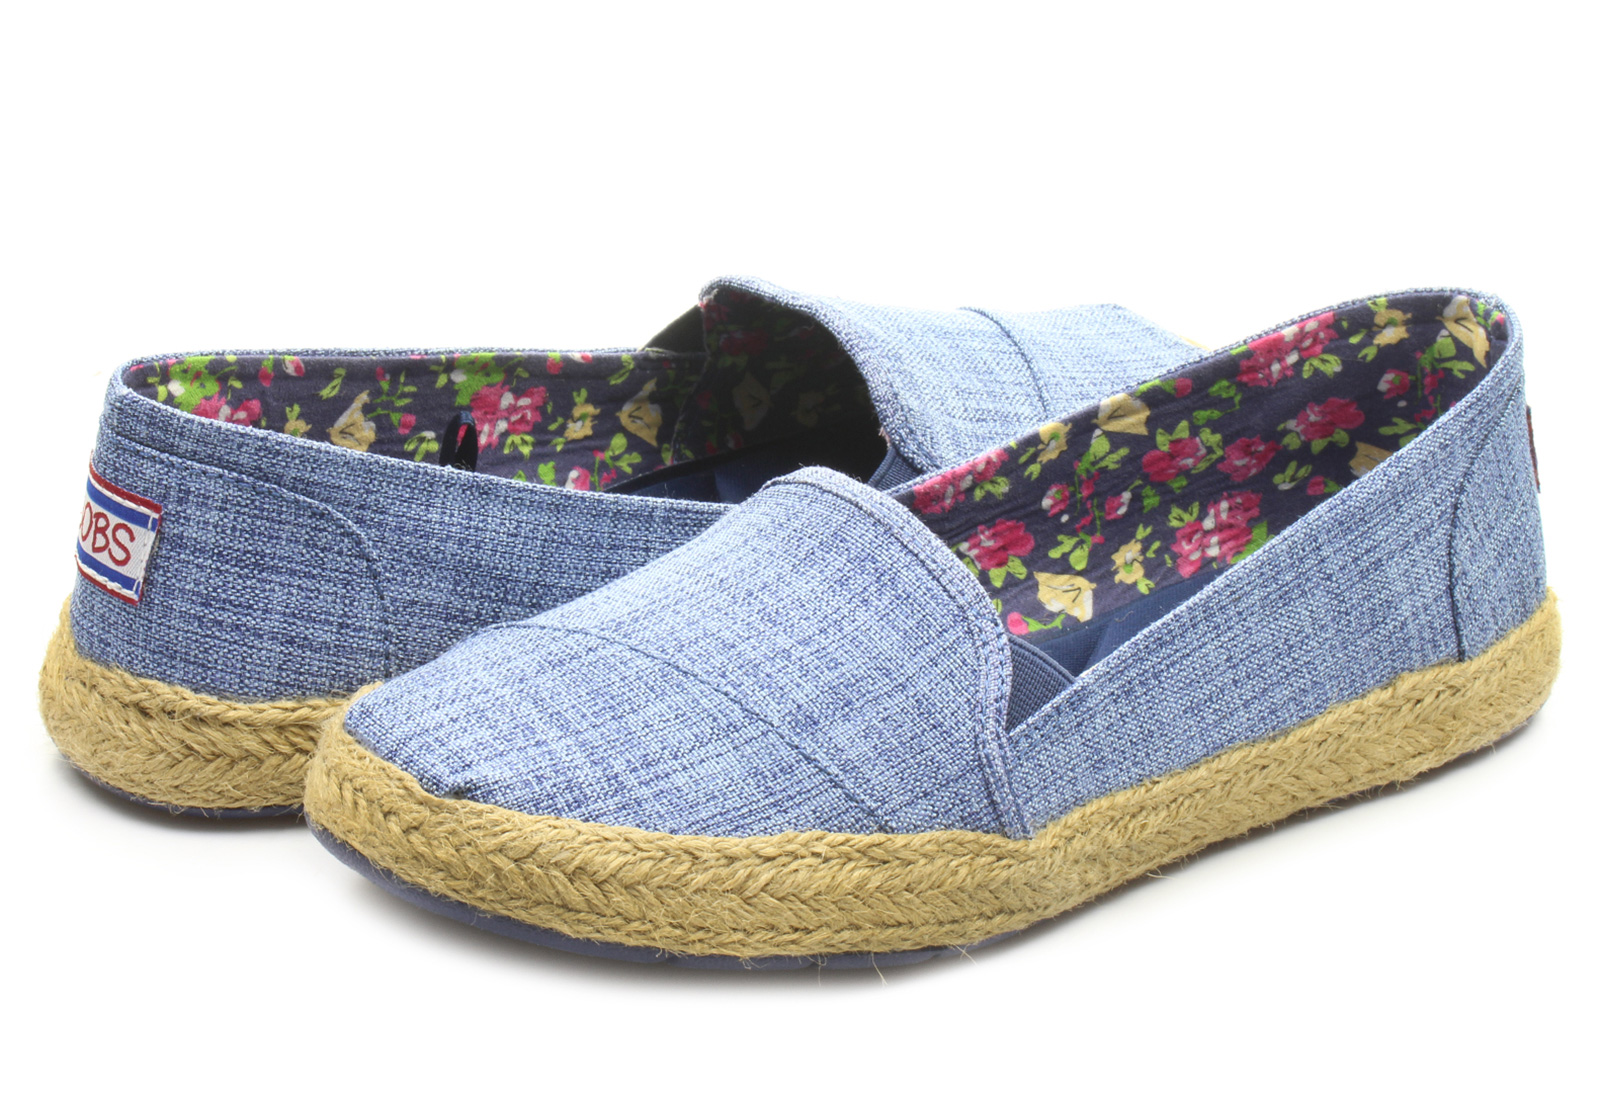 Shop BOBS at Shoe Carnival, in stores and online! Help animals and people in need with each and every purchase.